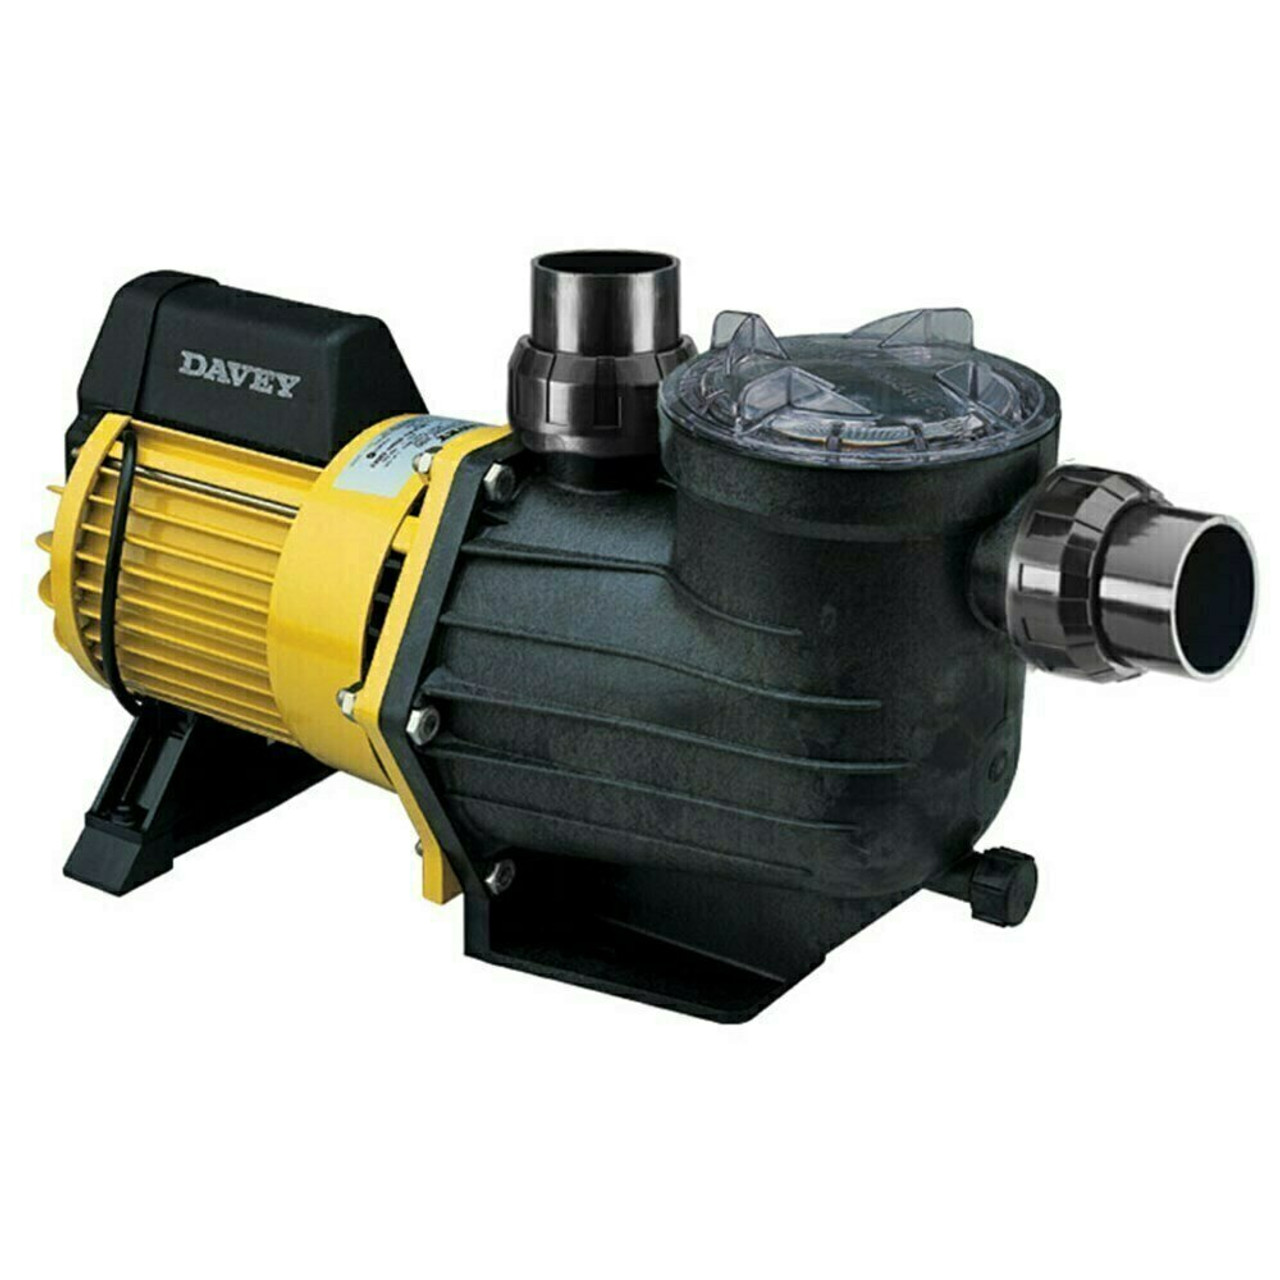 Davey PowerMaster PM4503 pool pump